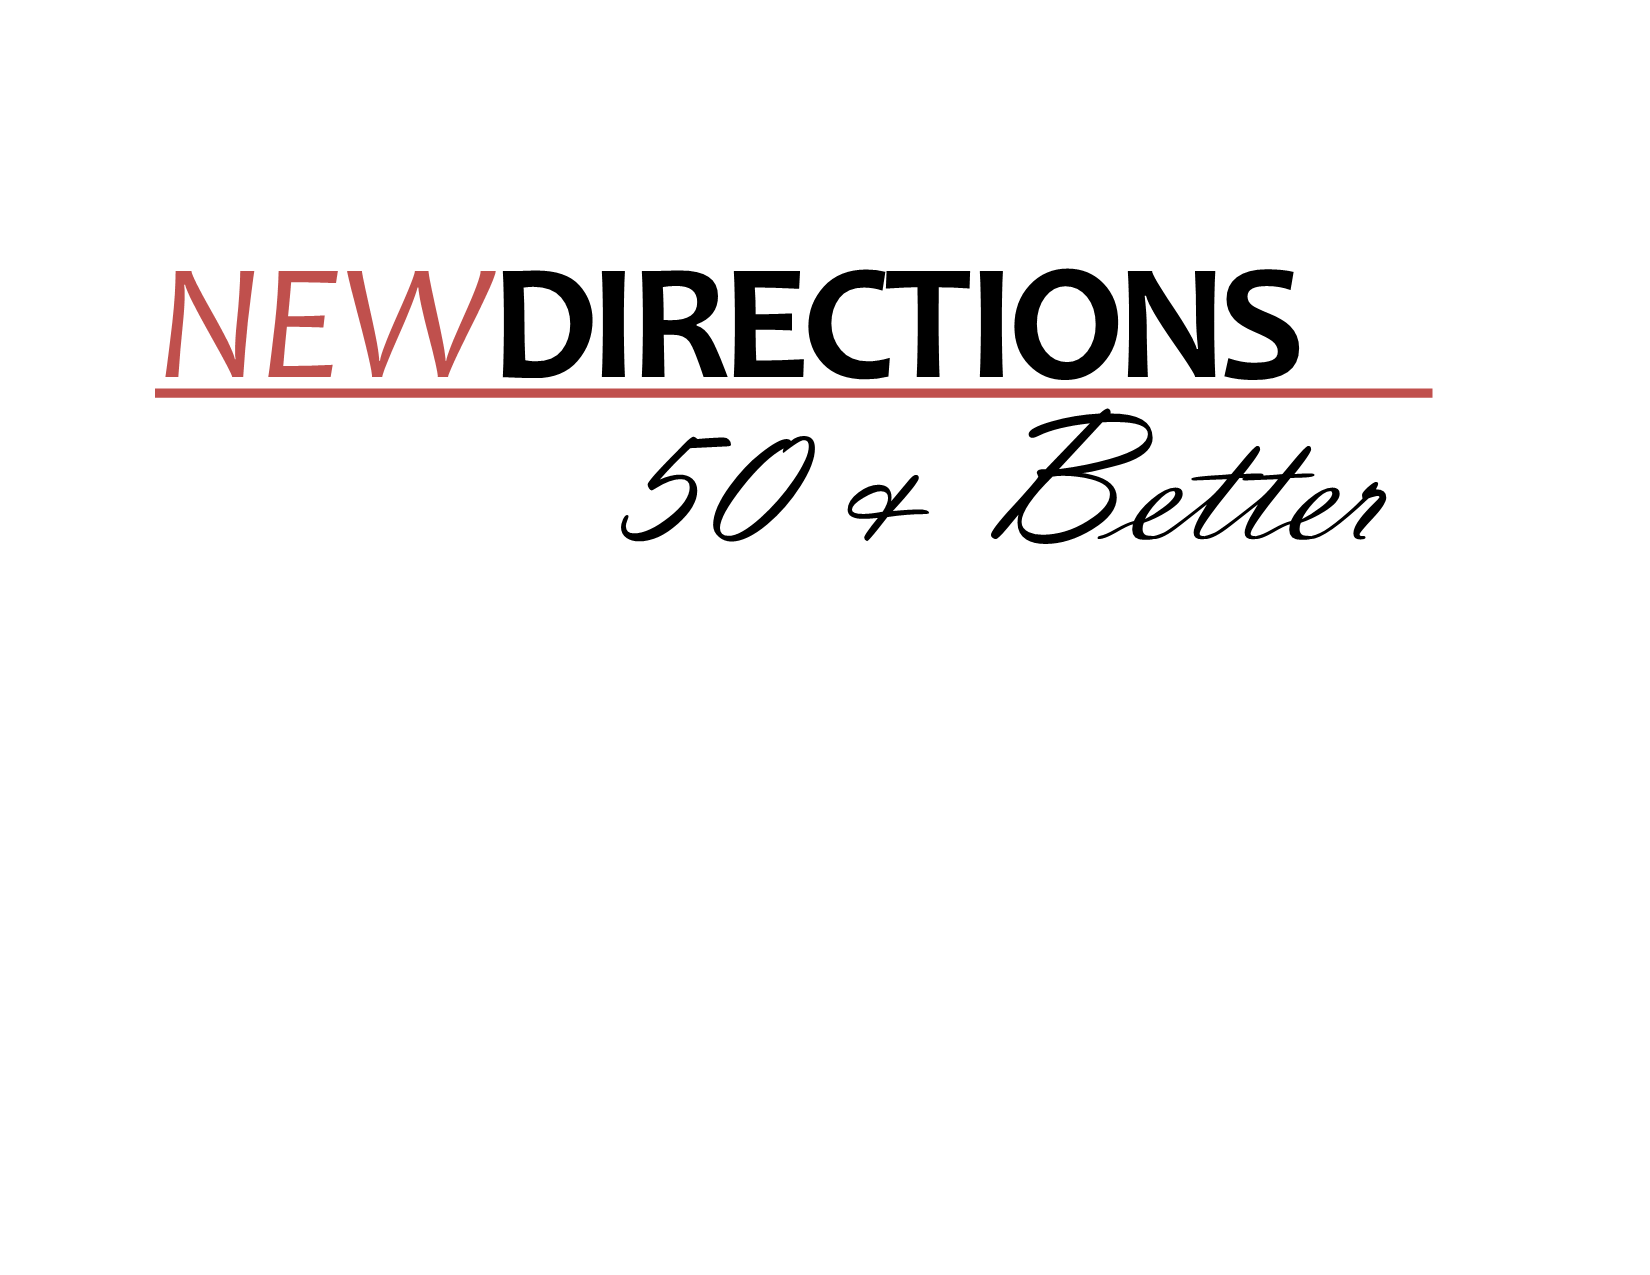 Join Us For New Fall Session of New Directions - 50 & Better